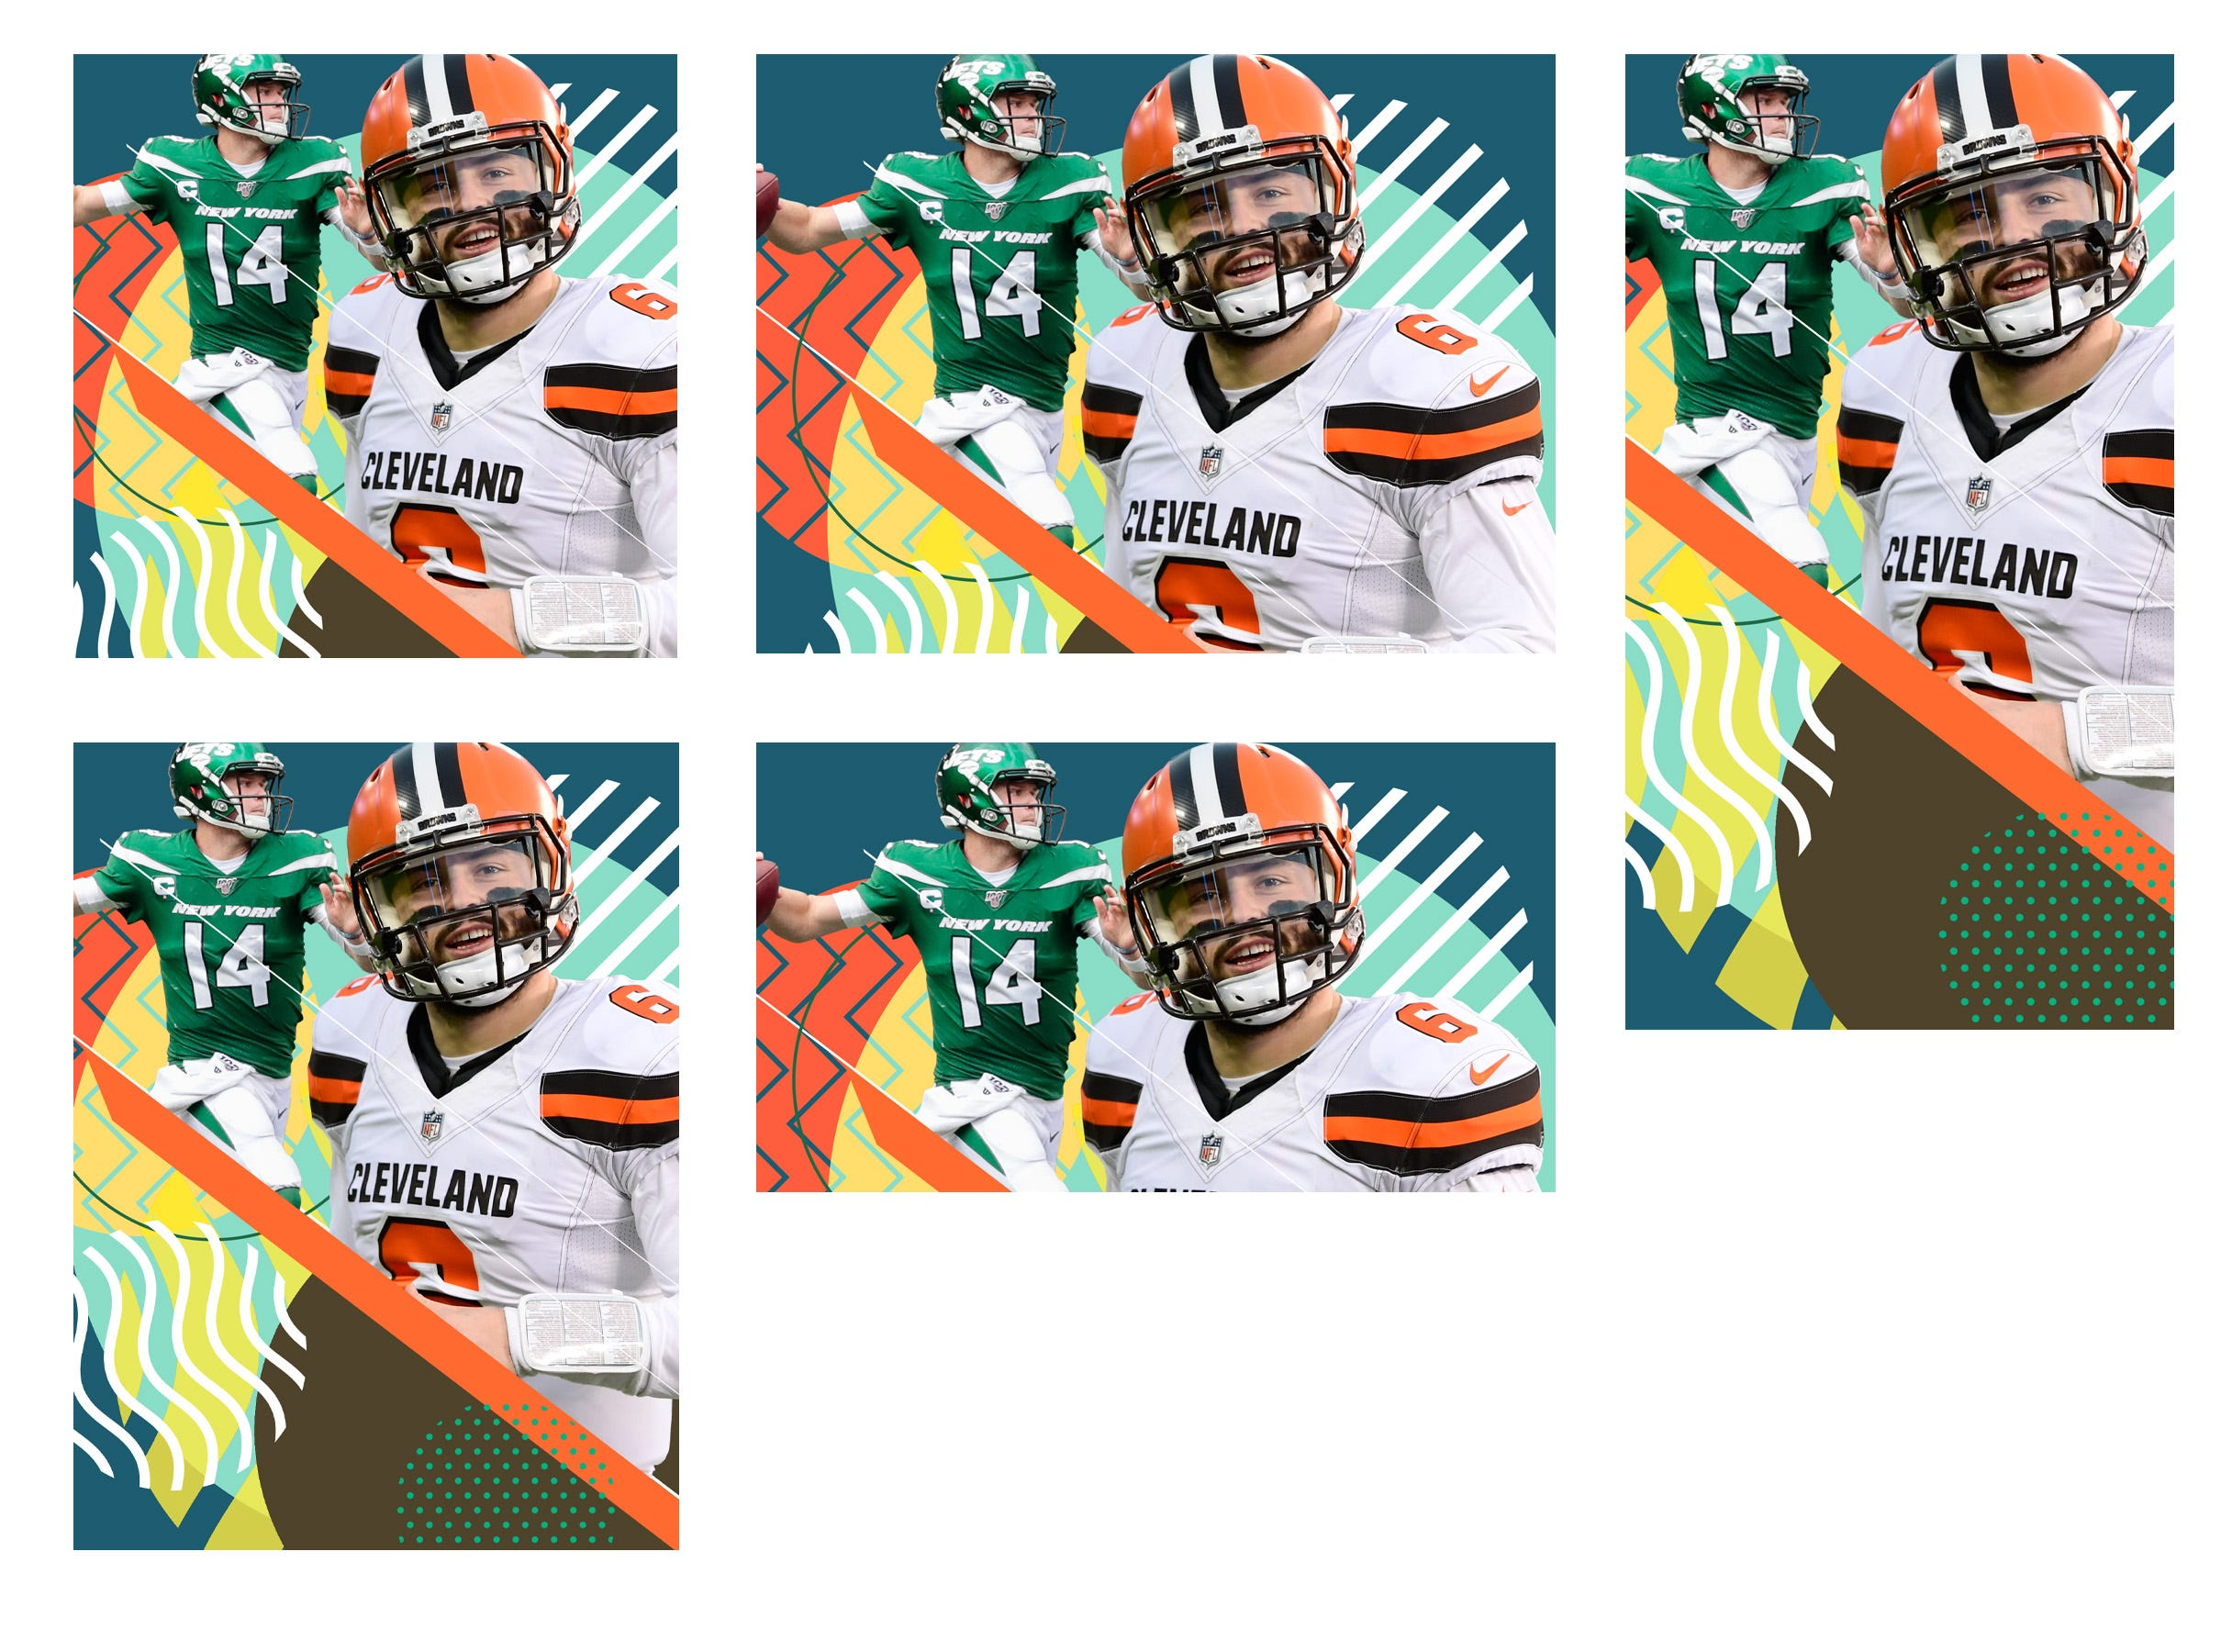 USA TODAY Sports' Week 2 NFL picks: Will Browns rebound against Jets on Monday night? thumbnail